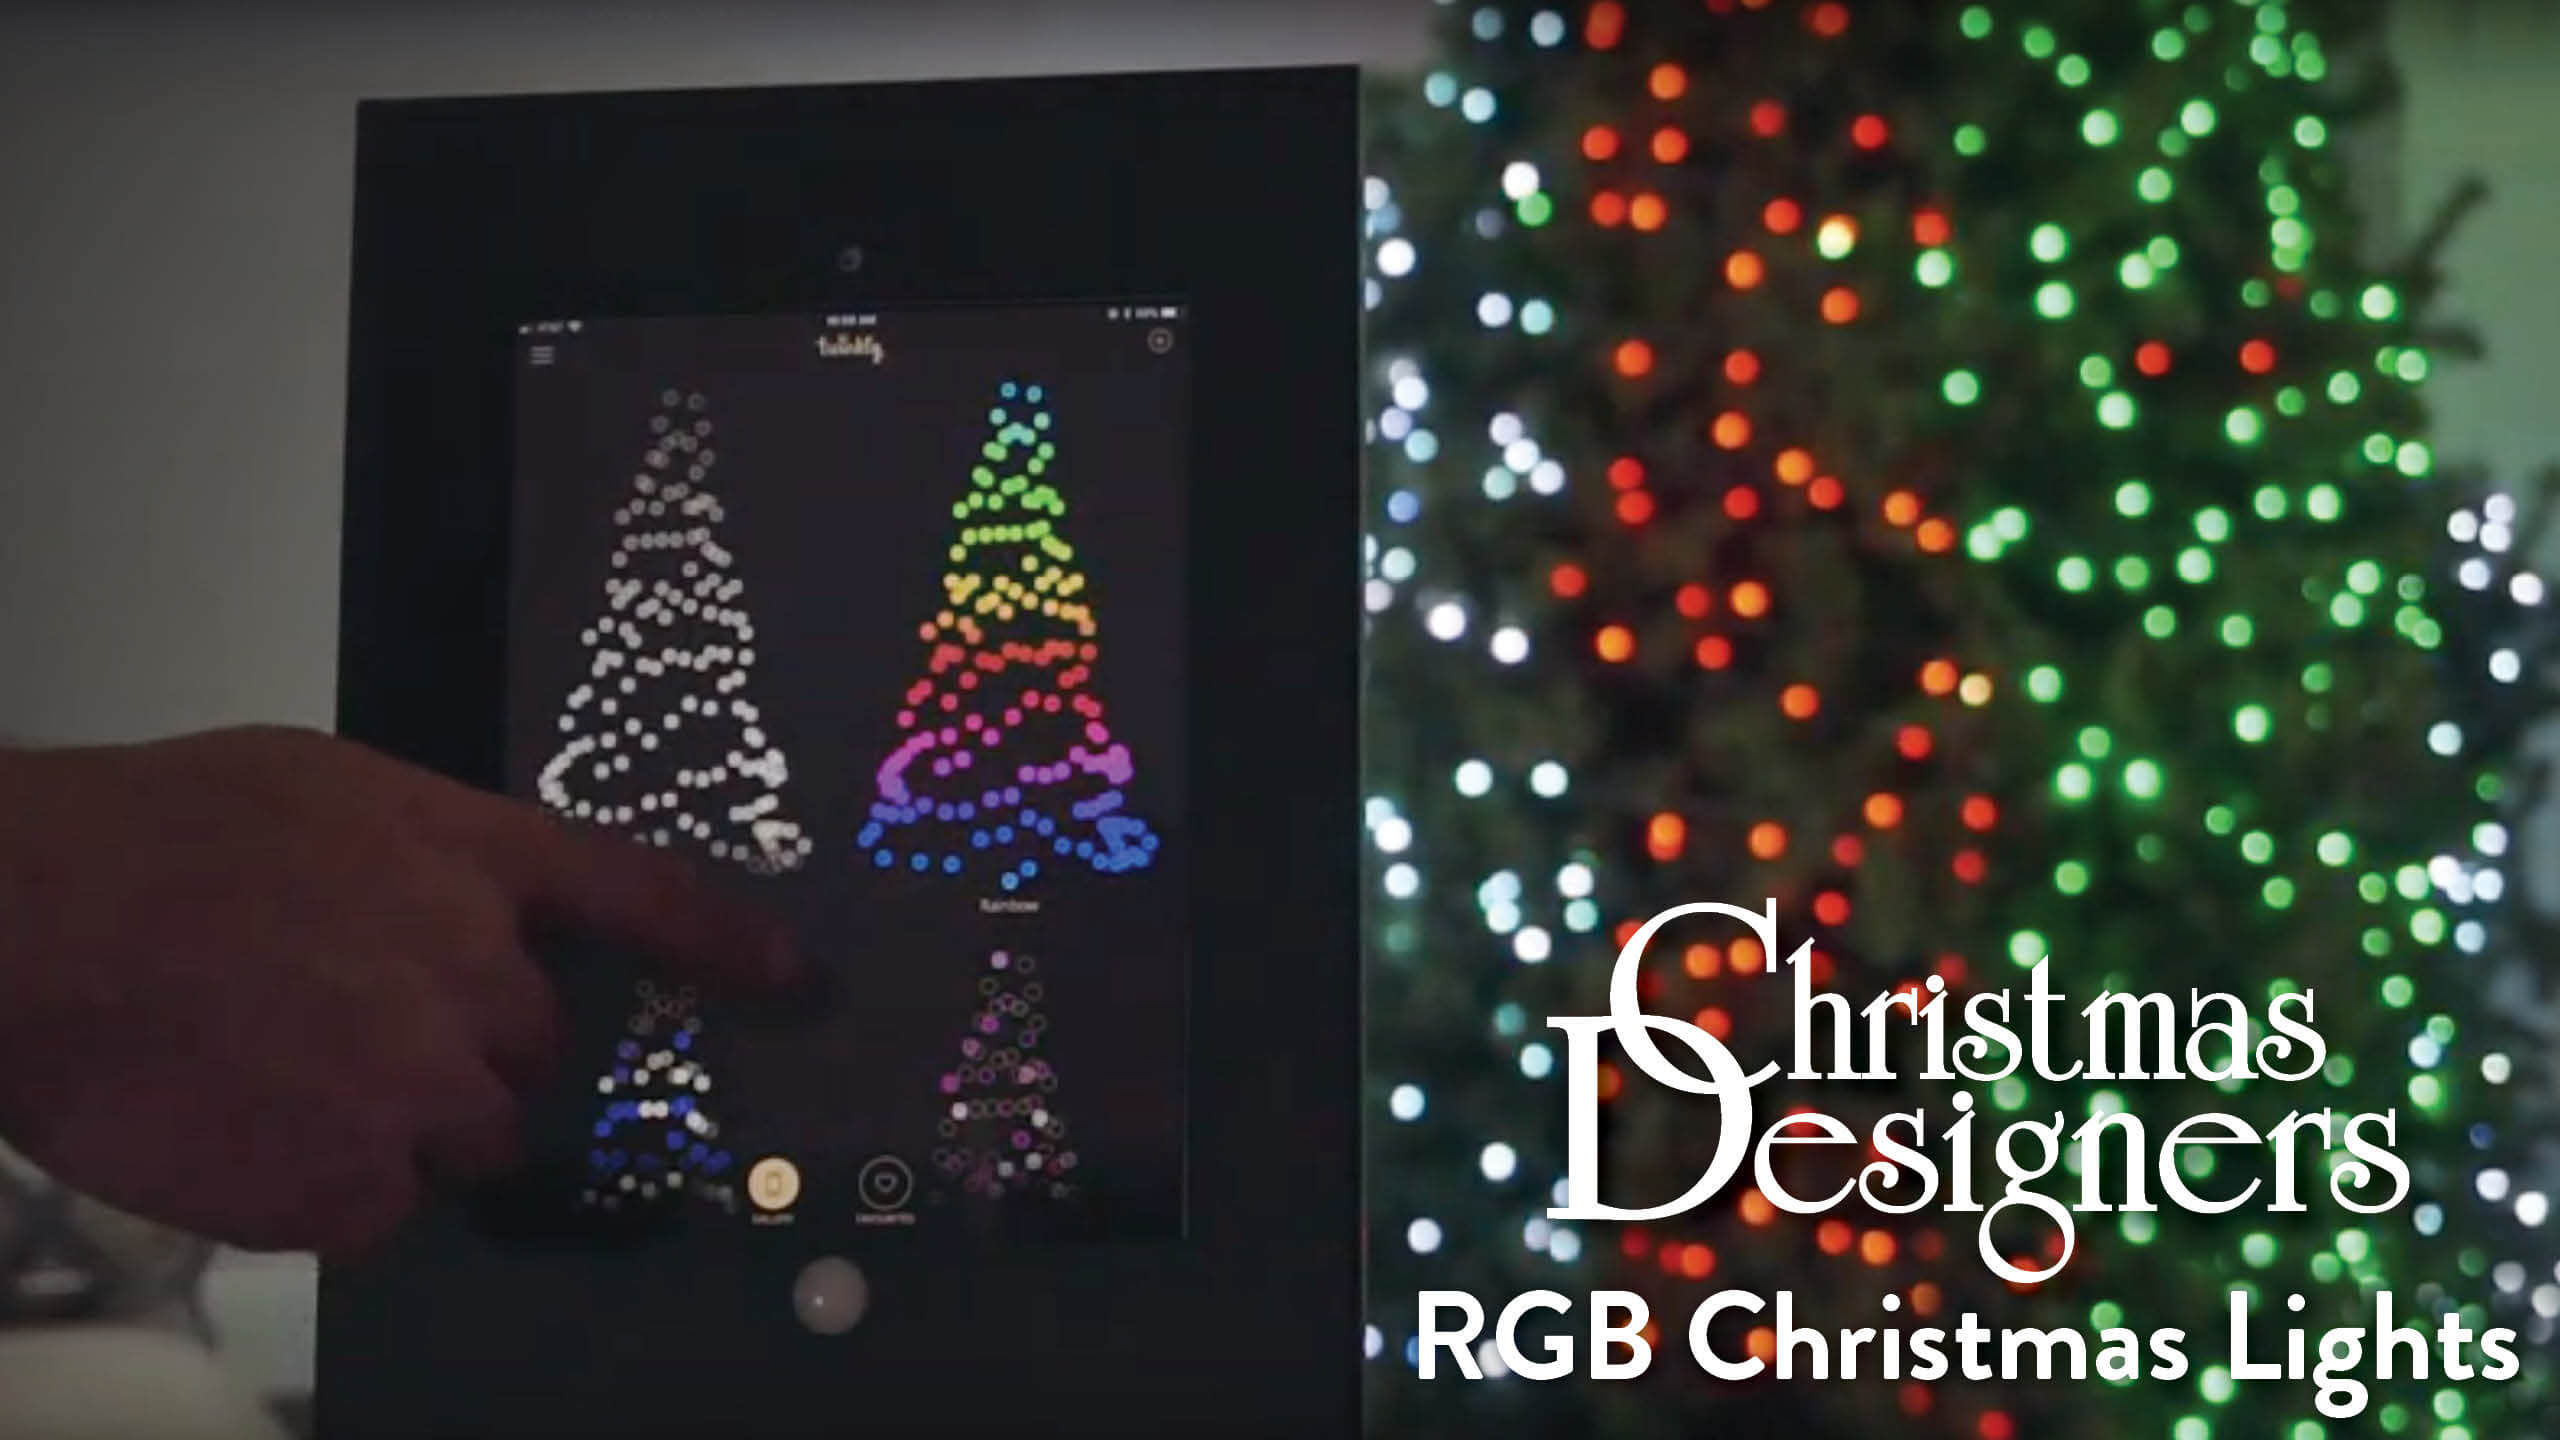 Twinkly Pro RGB Christmas Lights In Action